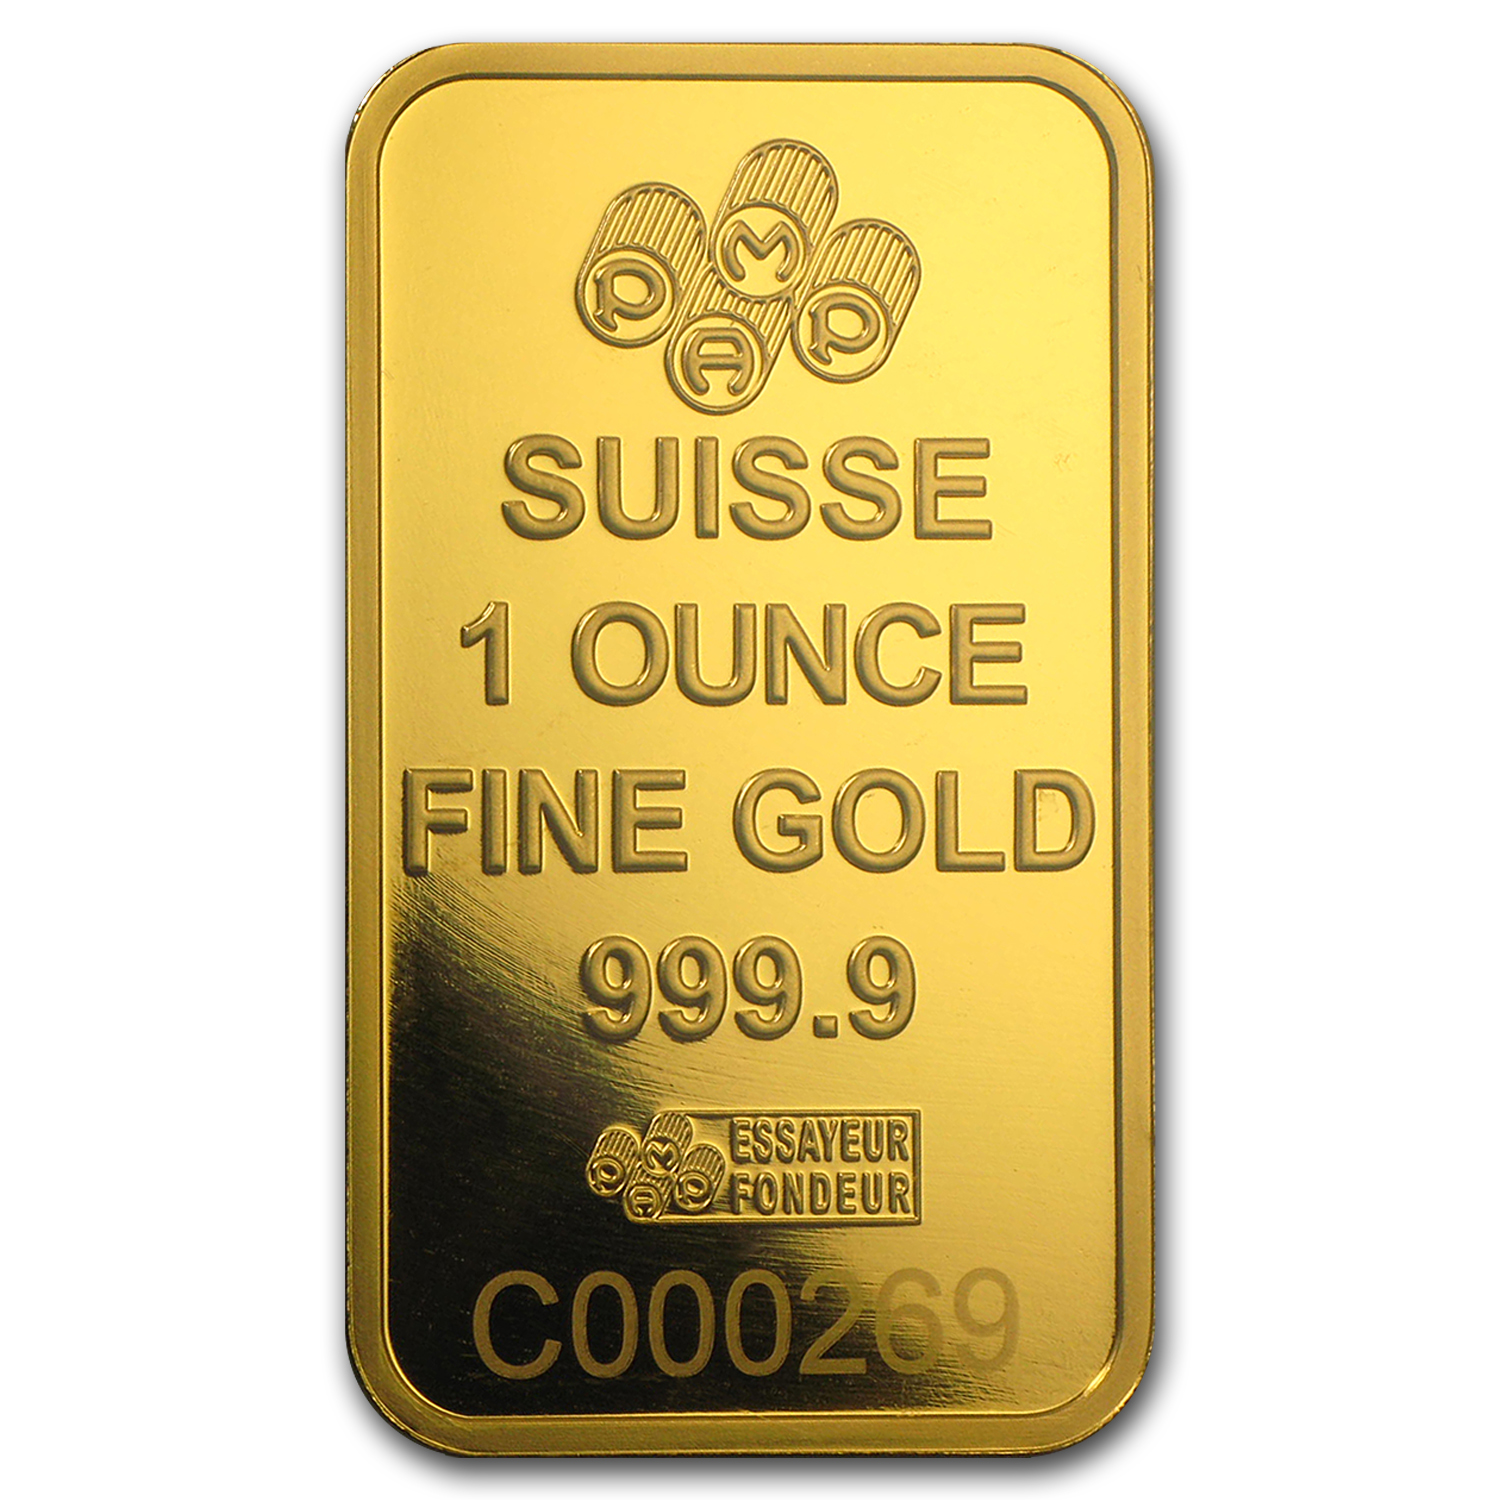 gold bar buddhist single women Mitsubishi materials corp said thursday it has made the world's largest gold bar, weighing 250 kg the gold bar, valued at 400 million yen, measures 455.